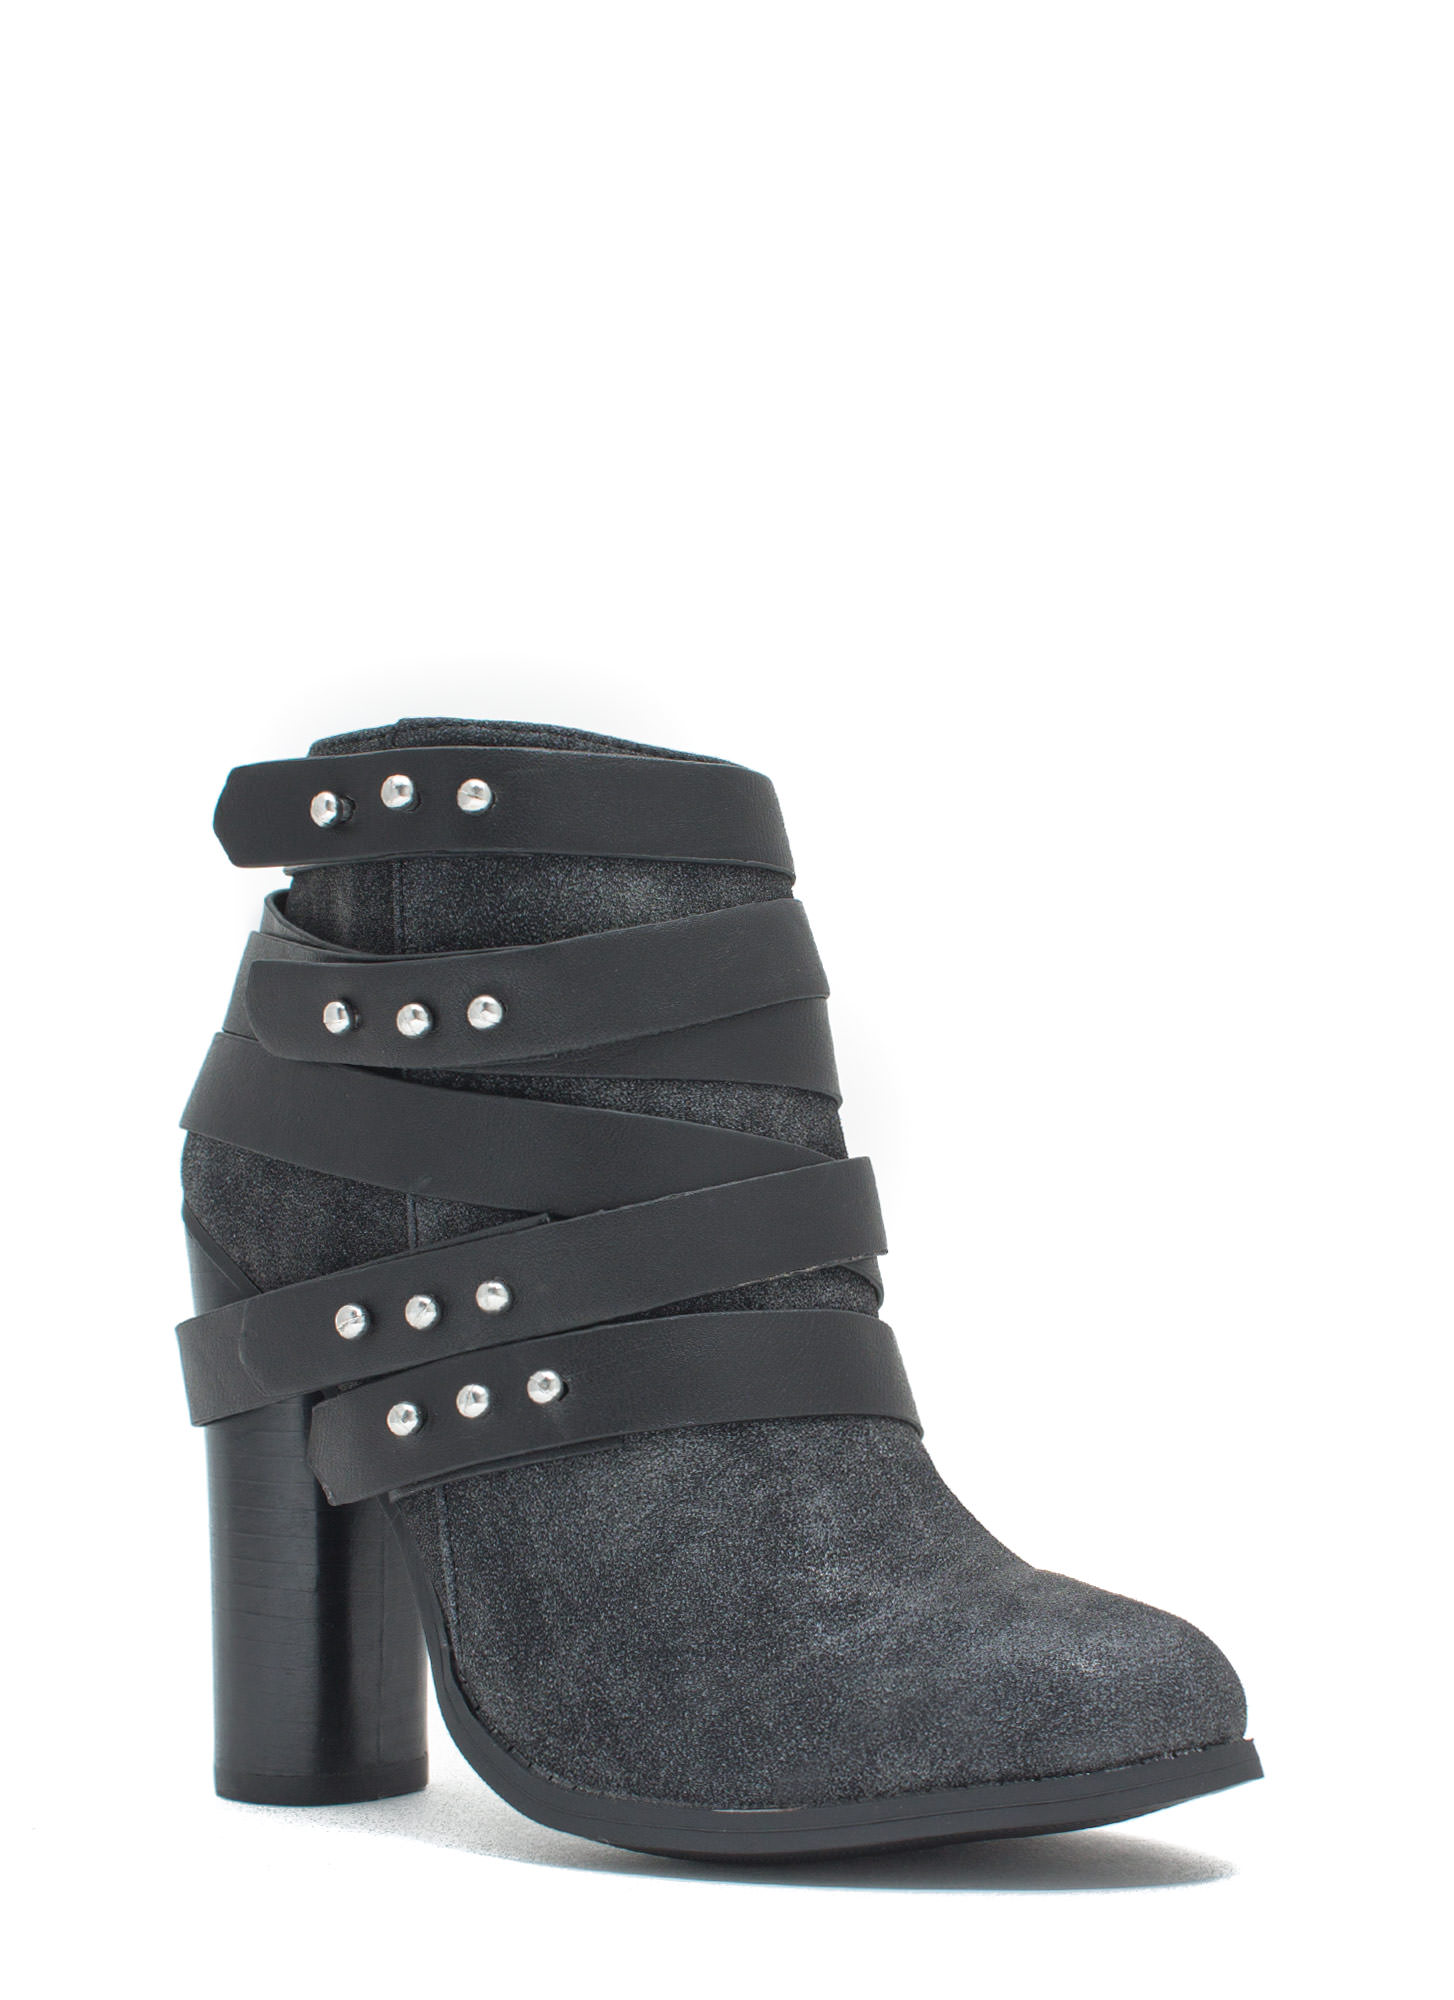 That's A Wrap Studded Booties BLACK